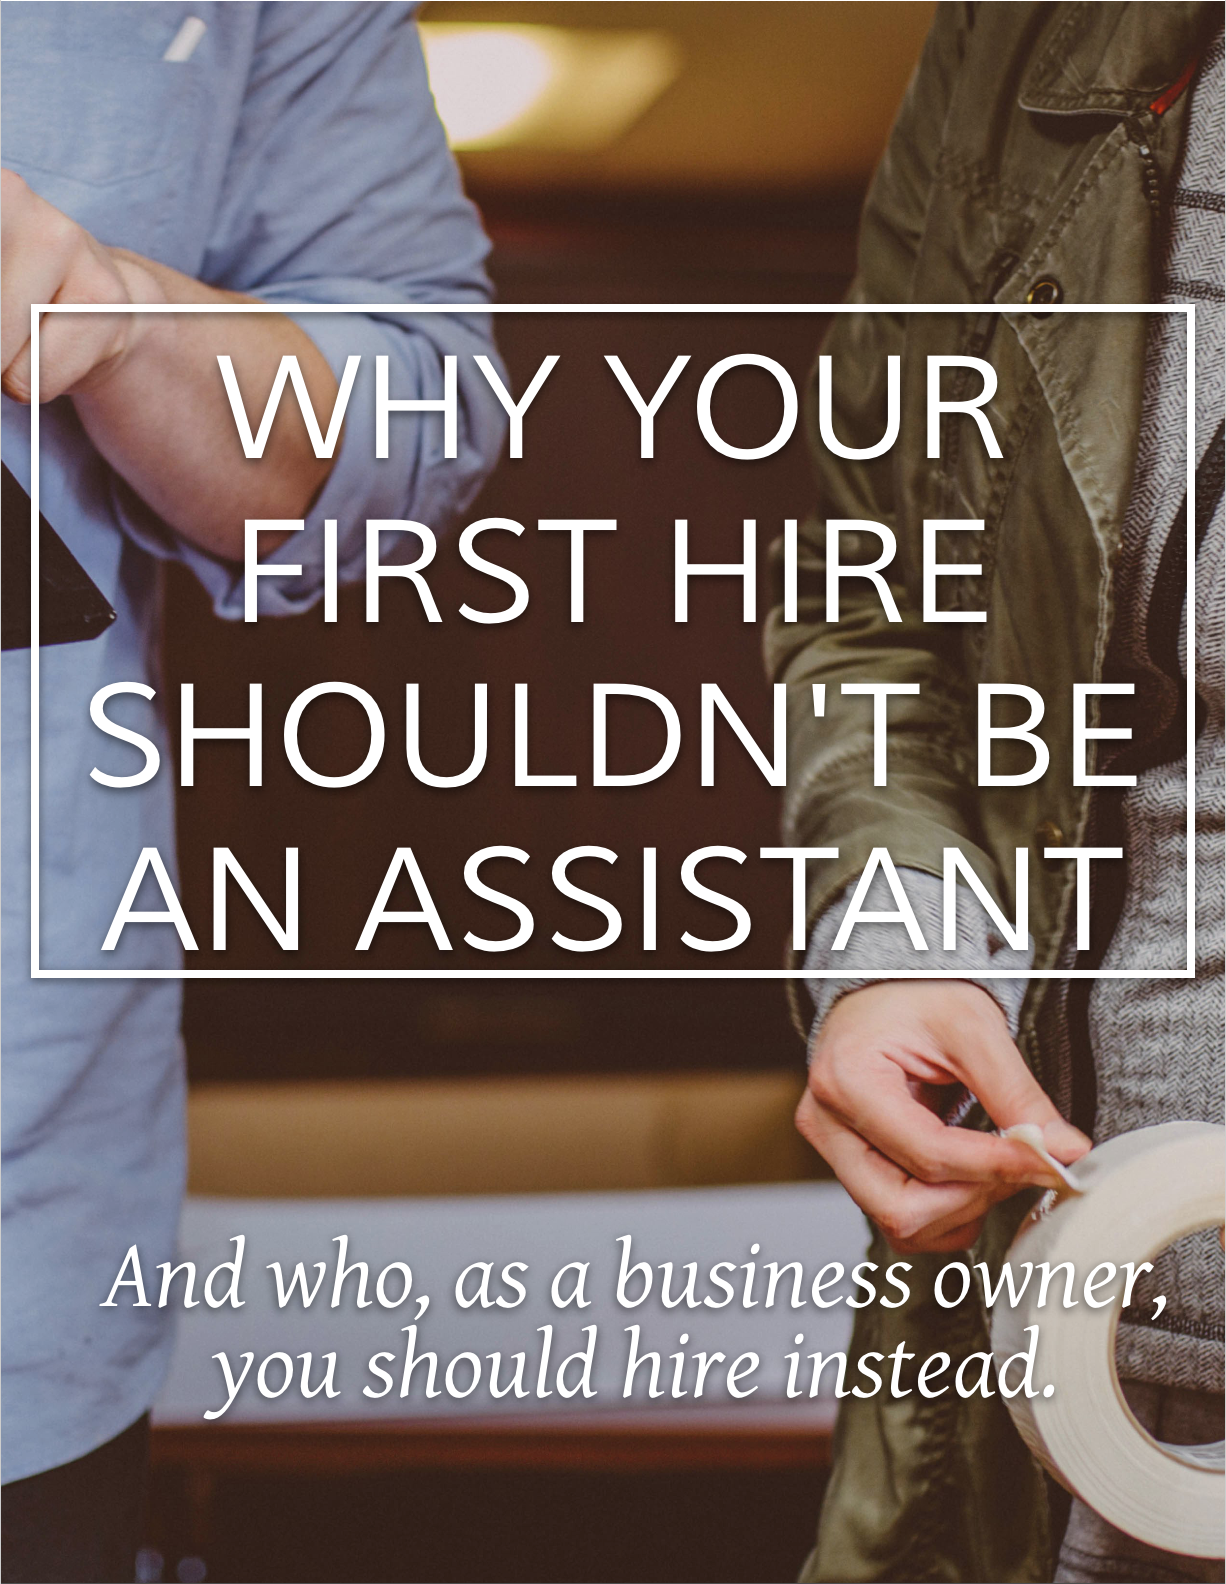 Your first instinct as an interior design business owner is to hire an assistant when things get busy, but that may not be the best move for your business. Find out who to consider hiring before an assistant.